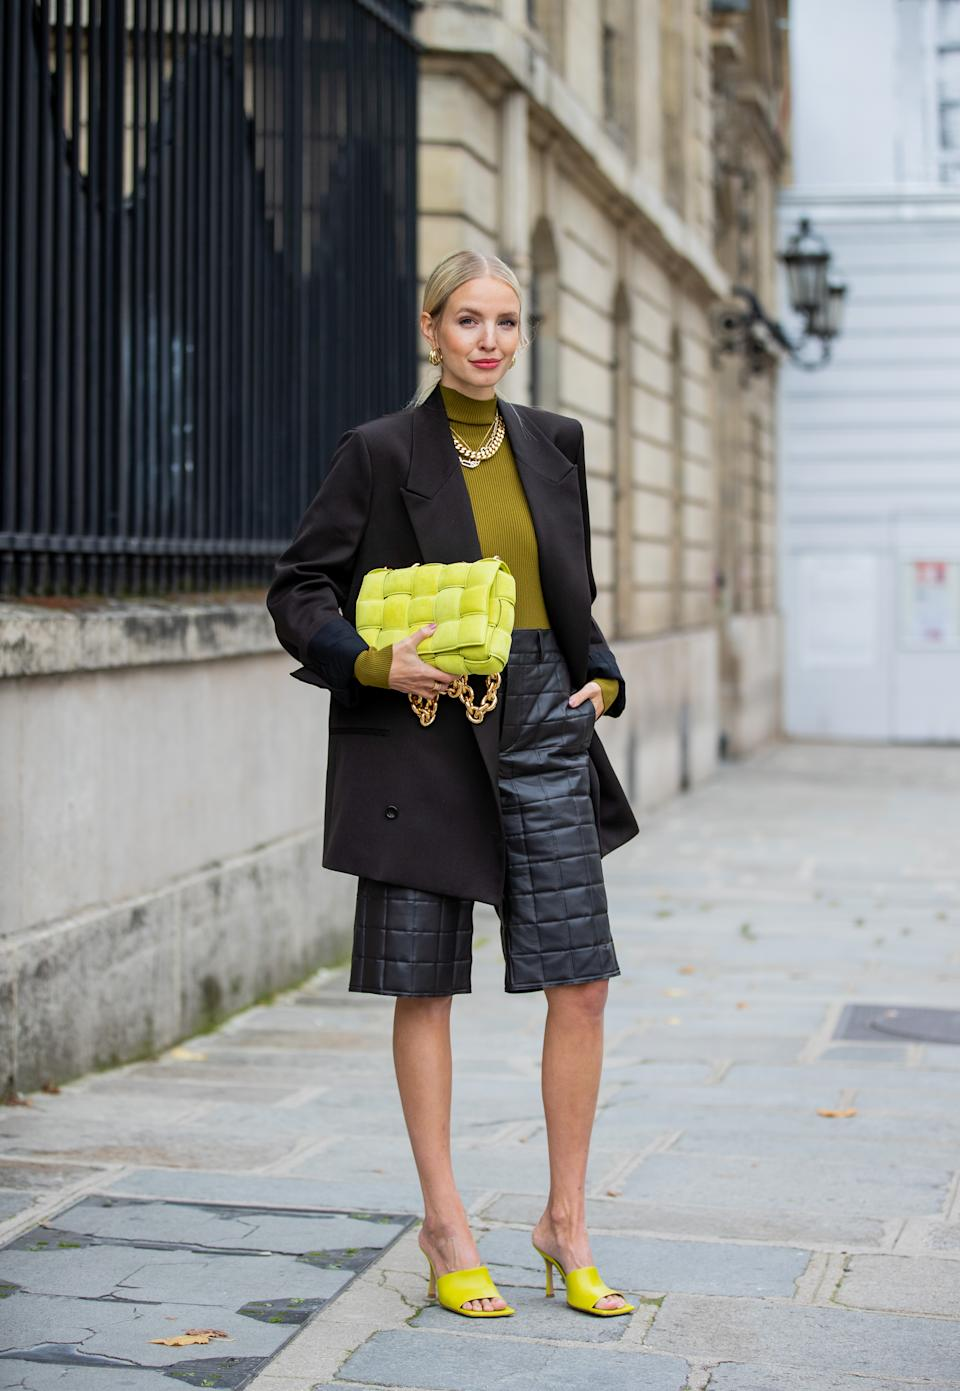 PARIS, FRANCE - OCTOBER 08: Leonie Hanne is seen wearing black blazer Maison Margiela, neon yellow bag Bottega Veneta, shorts Bottega, shoes Bottega Veneta, green turtleneck during a Street Style Fashion Photo Session on October 08, 2020 in Paris, France. (Photo by Christian Vierig/Getty Images)